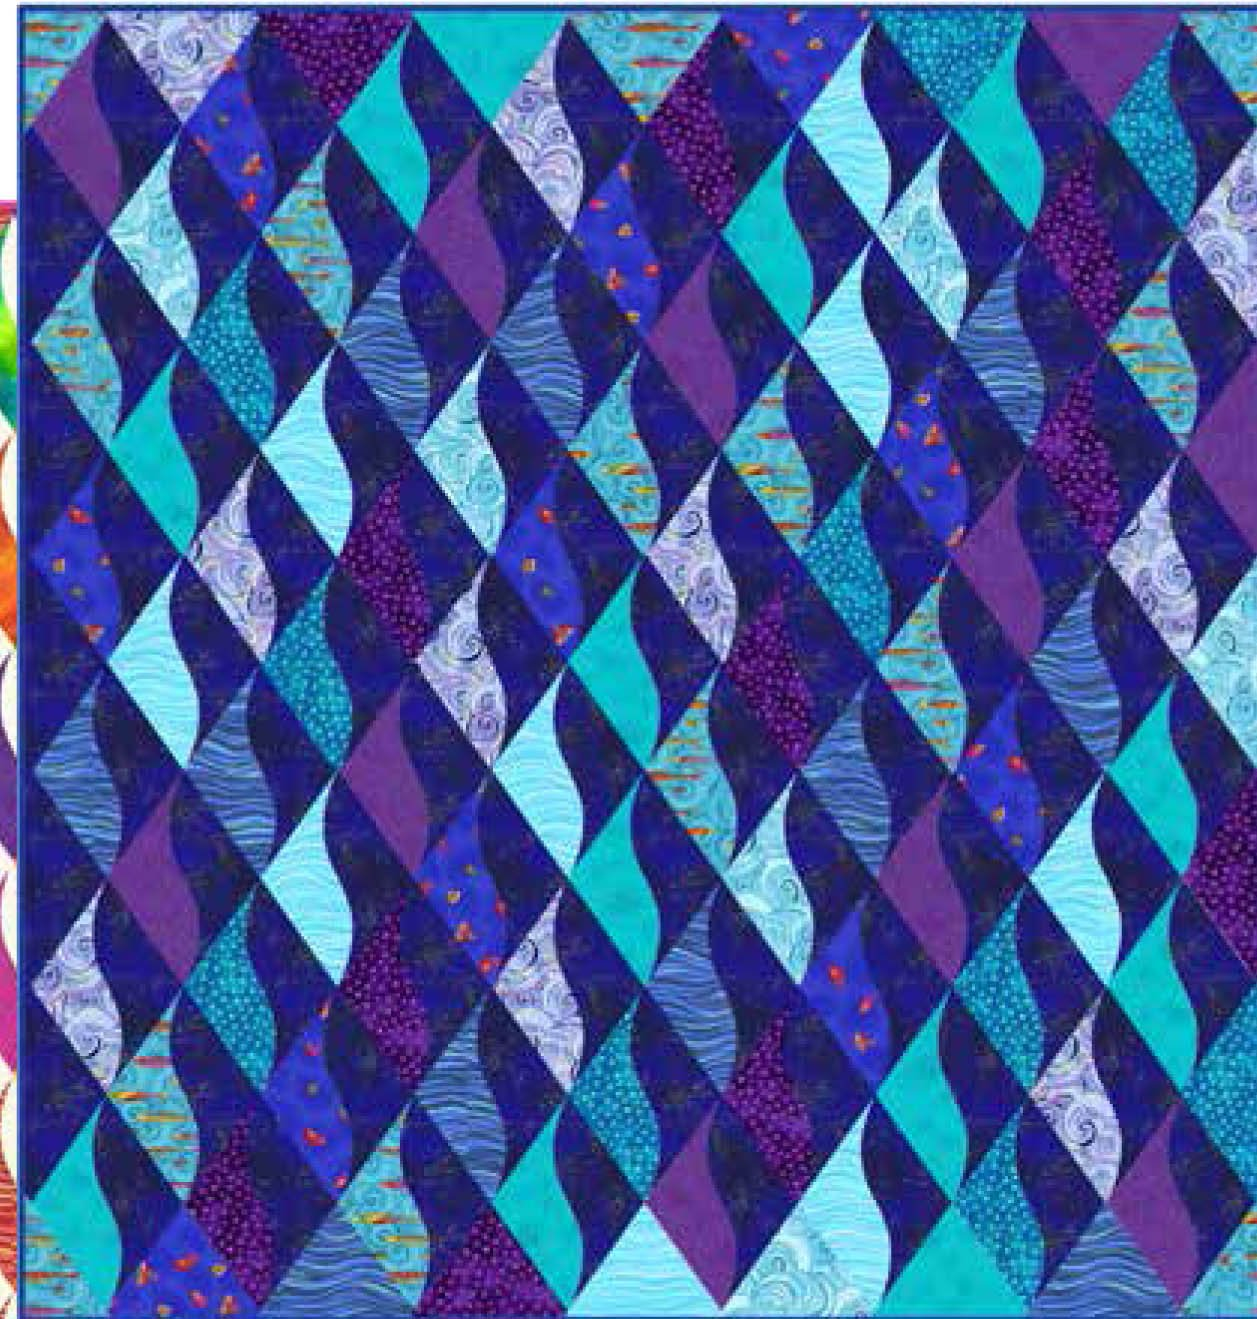 Dancing Diamonds Quilt